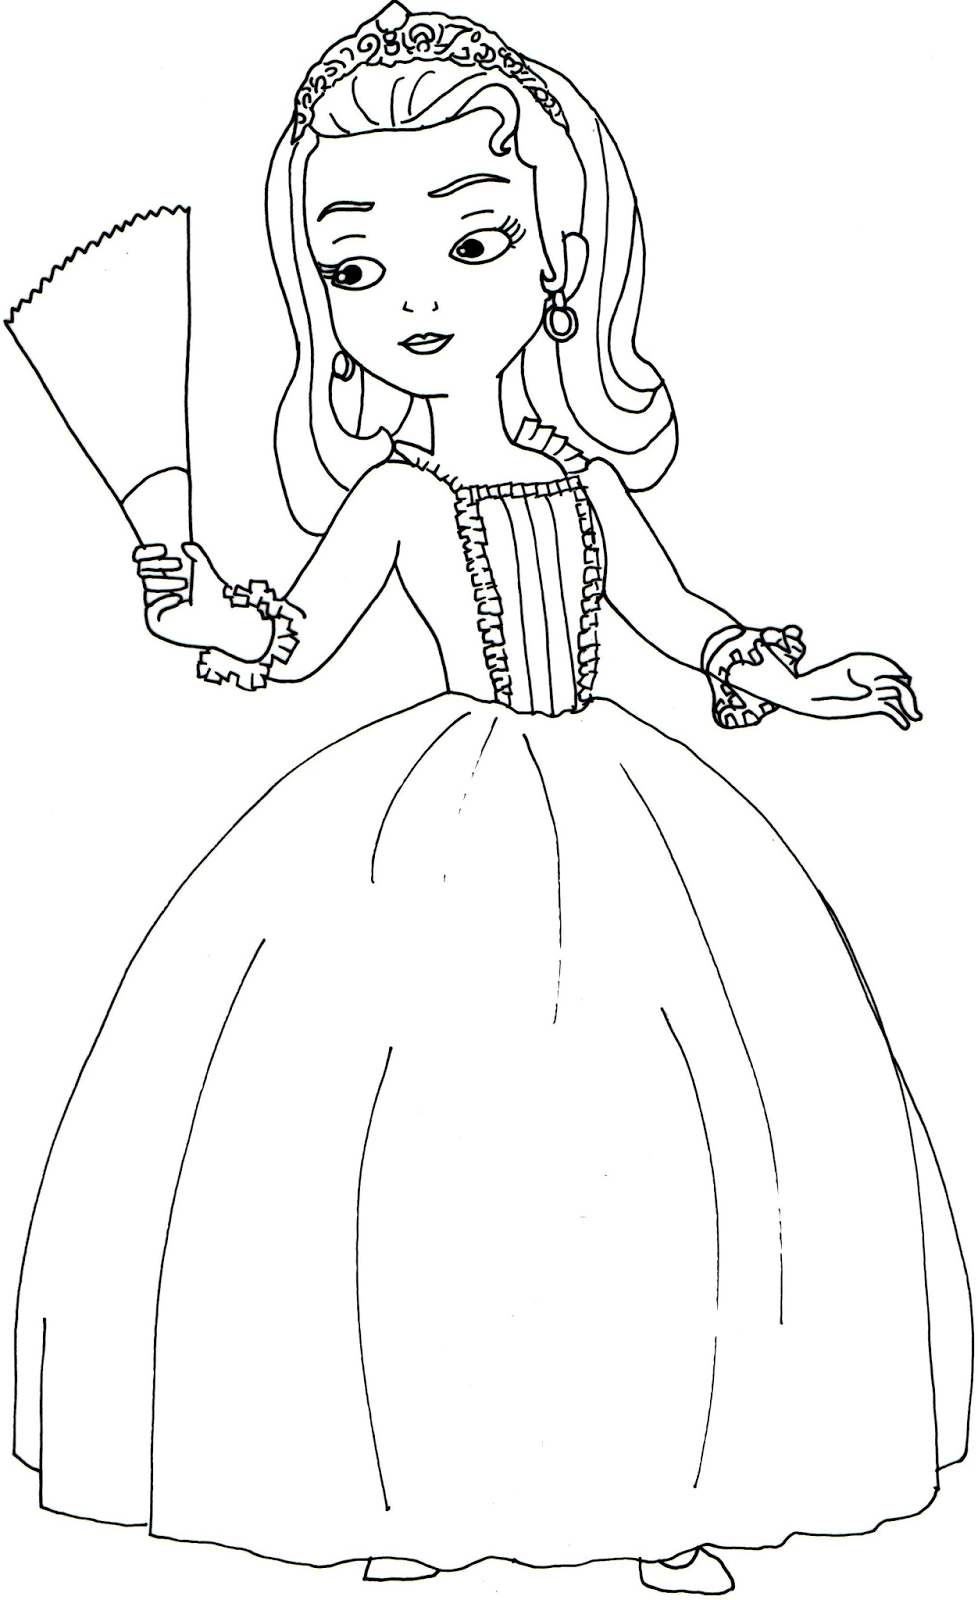 Princess Sofia Coloring Pages Games : Sofia coloring pages princess the first